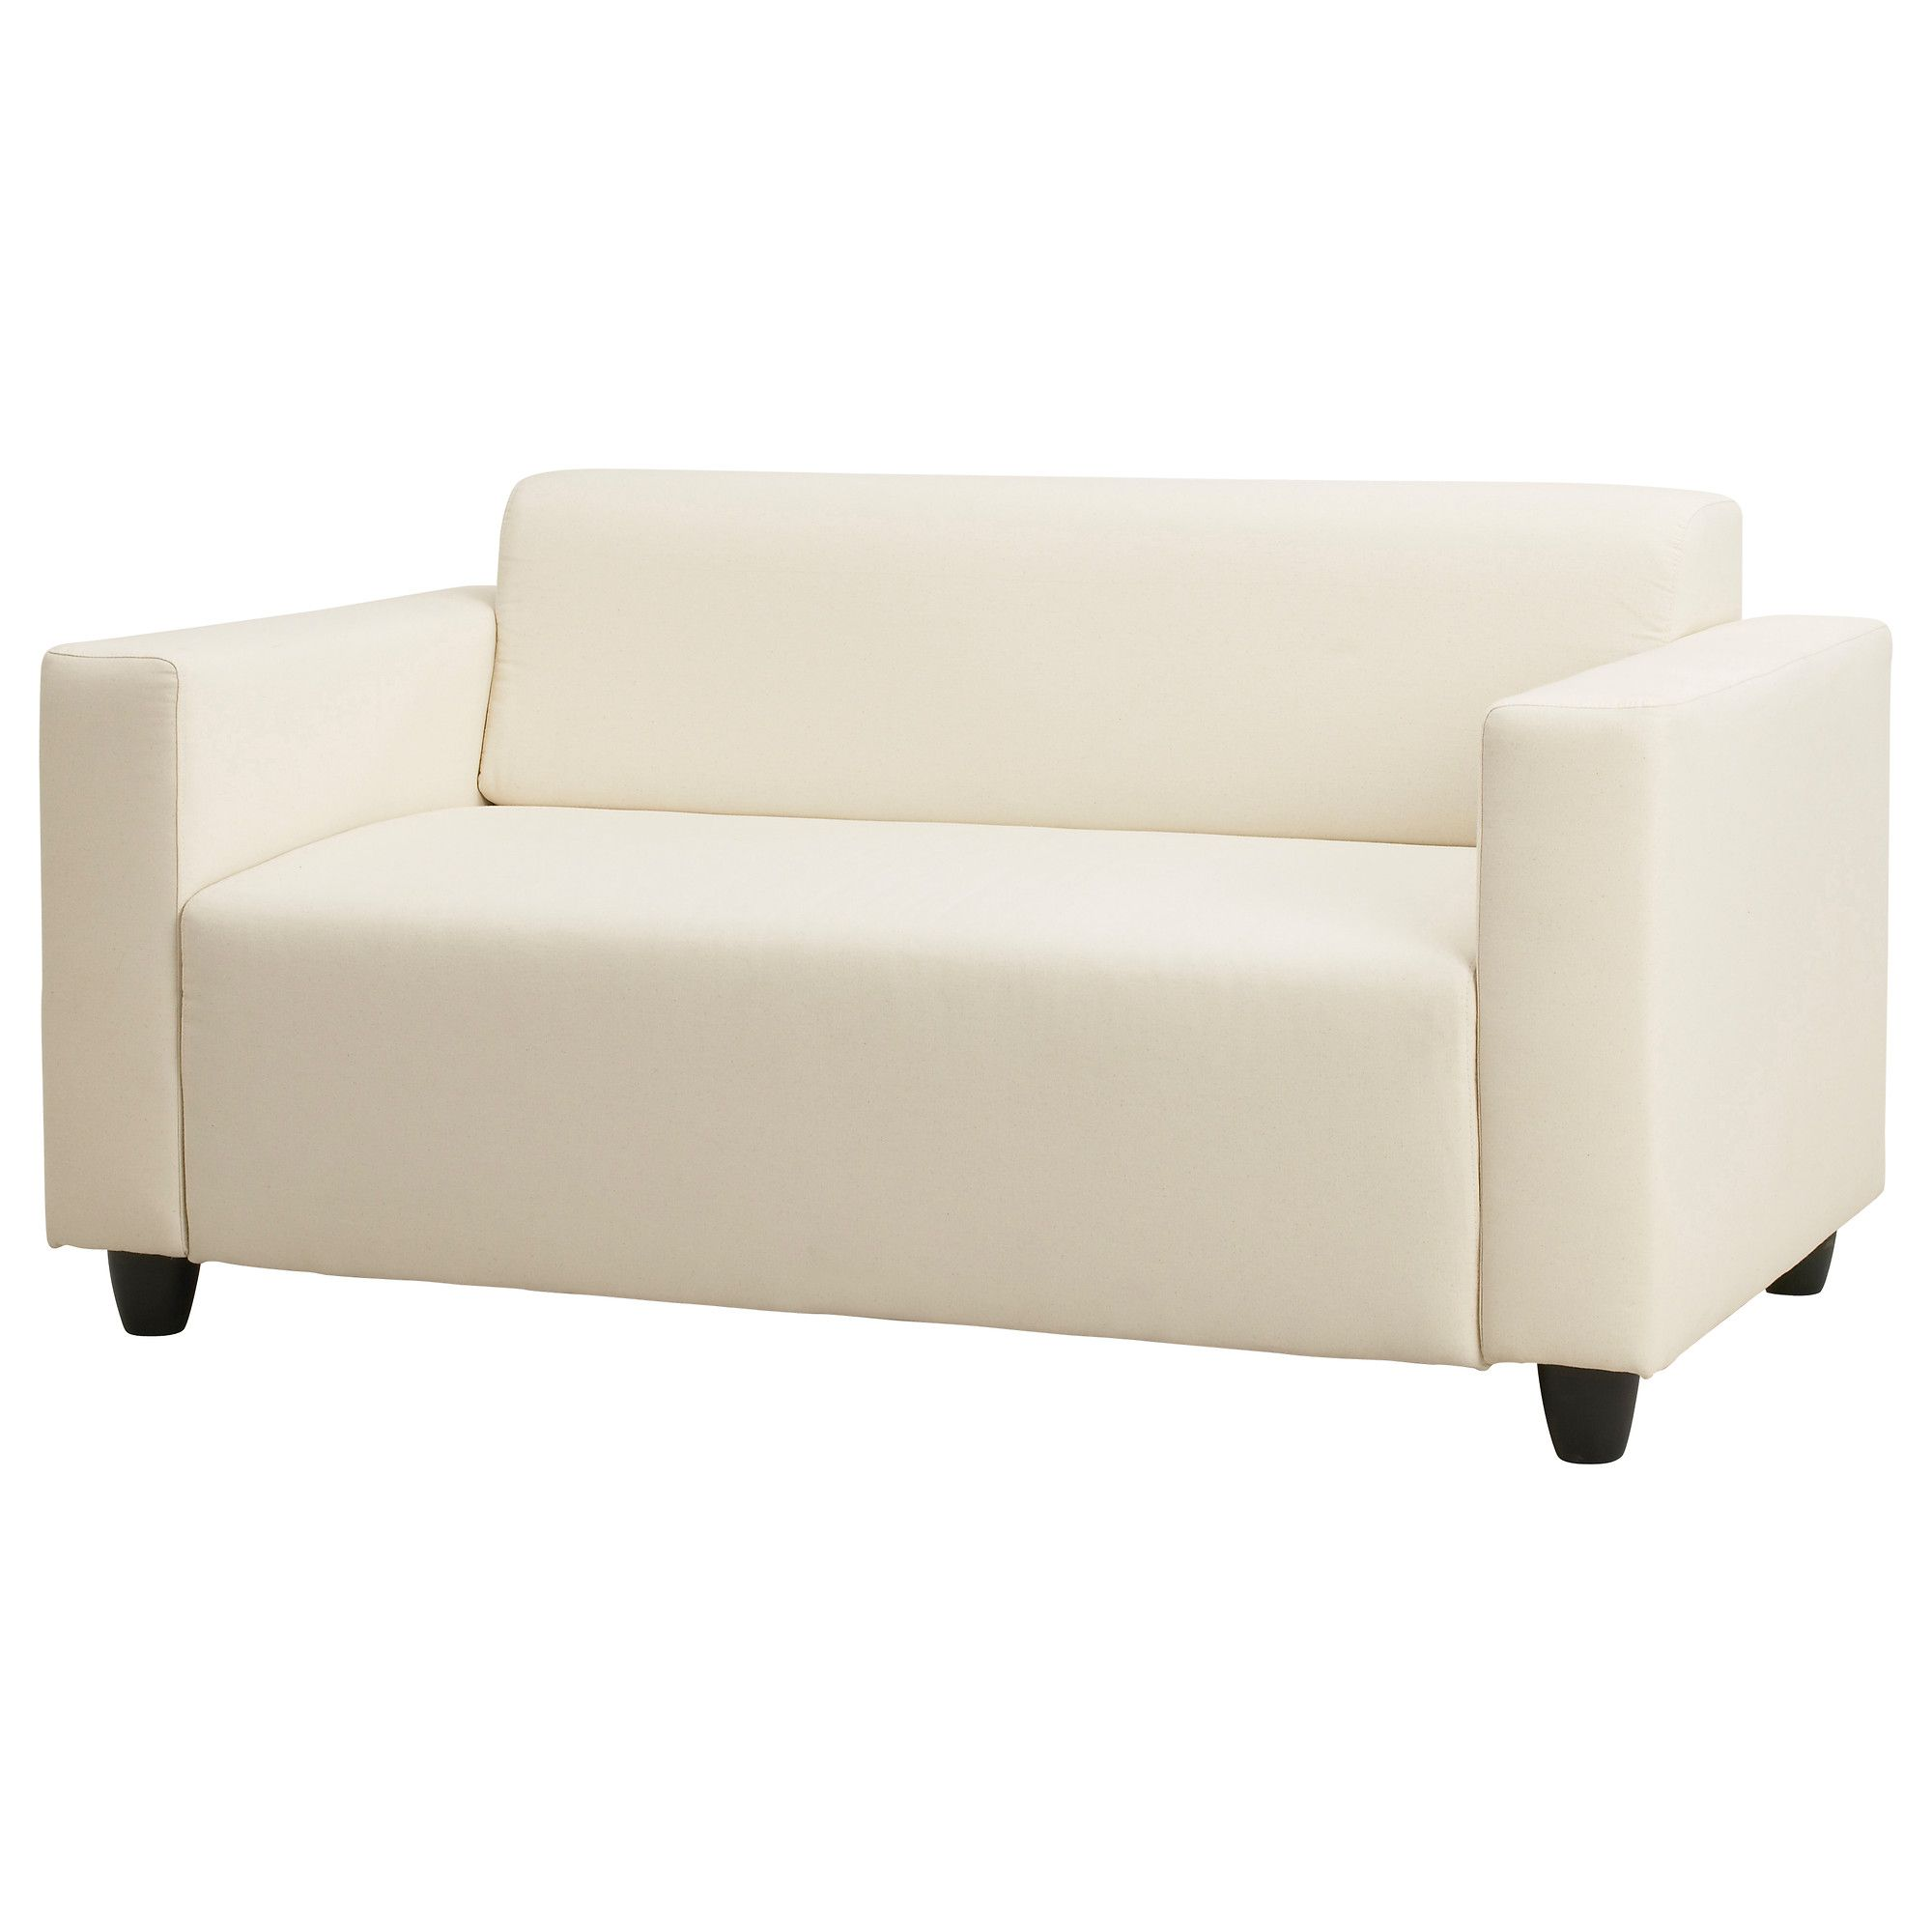 2er sofa ikea  KLOBO Two-seat sofa - IKEA $179. Lussebo Natural ONLY. Width: 146 ...